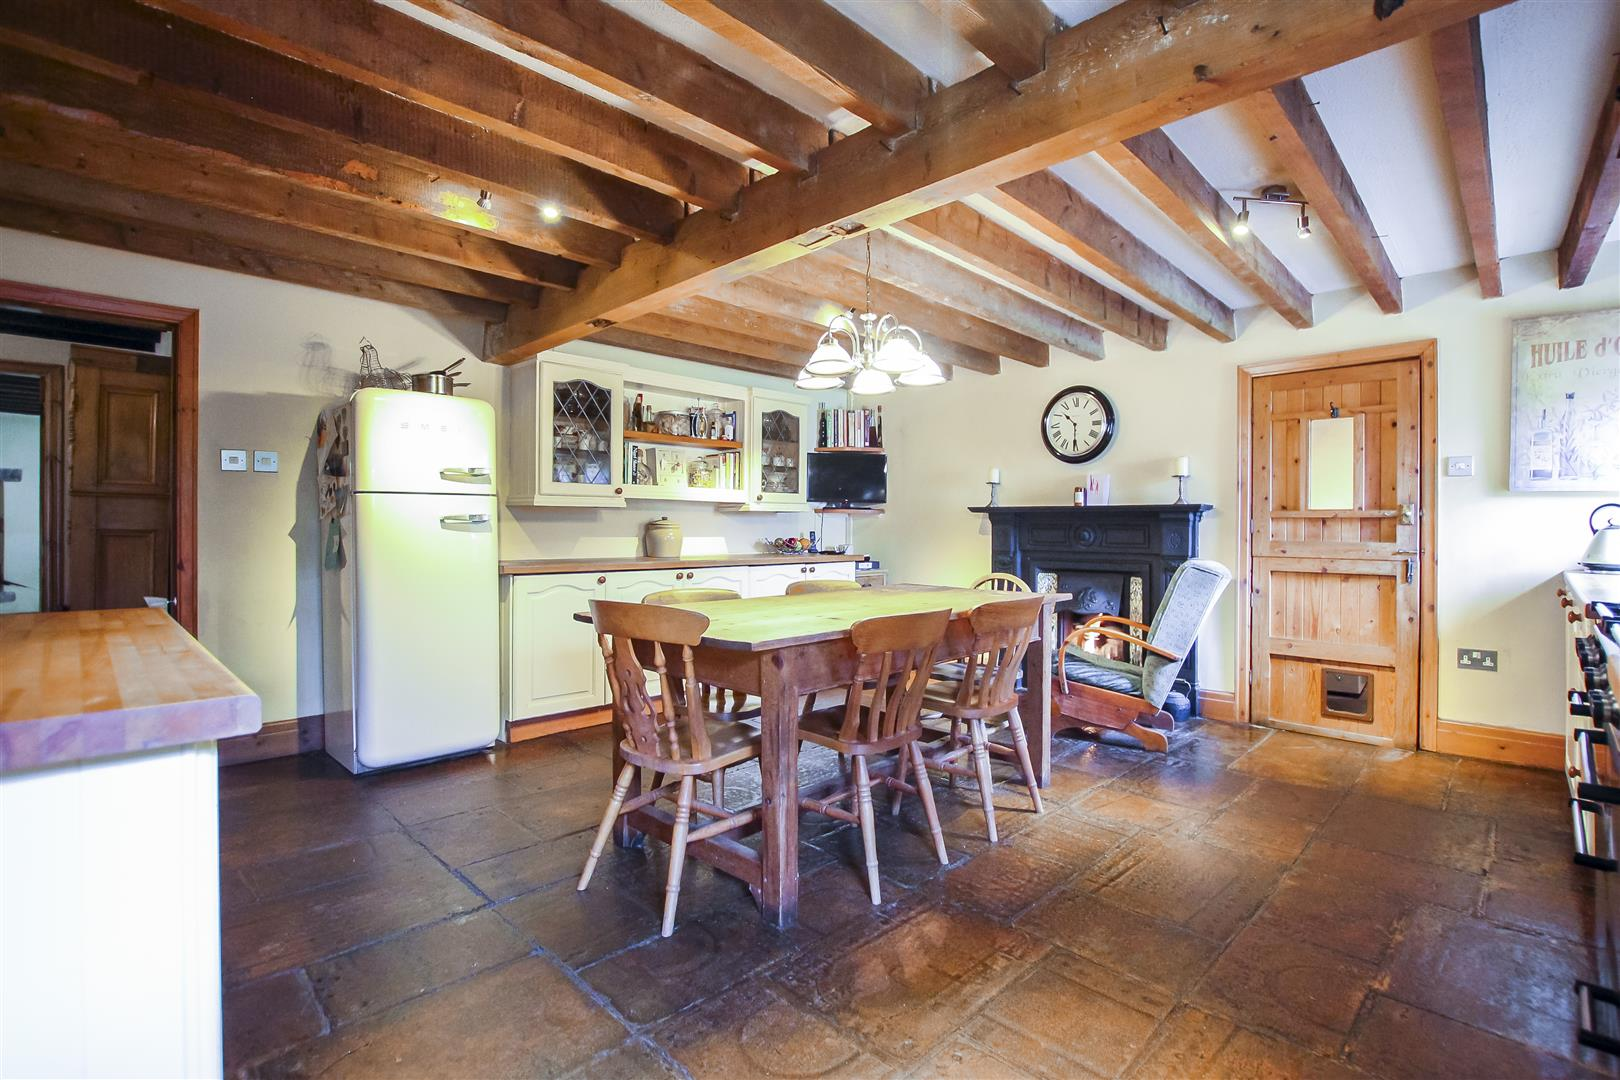 5 Bedroom Barn Conversion For Sale - Image 3